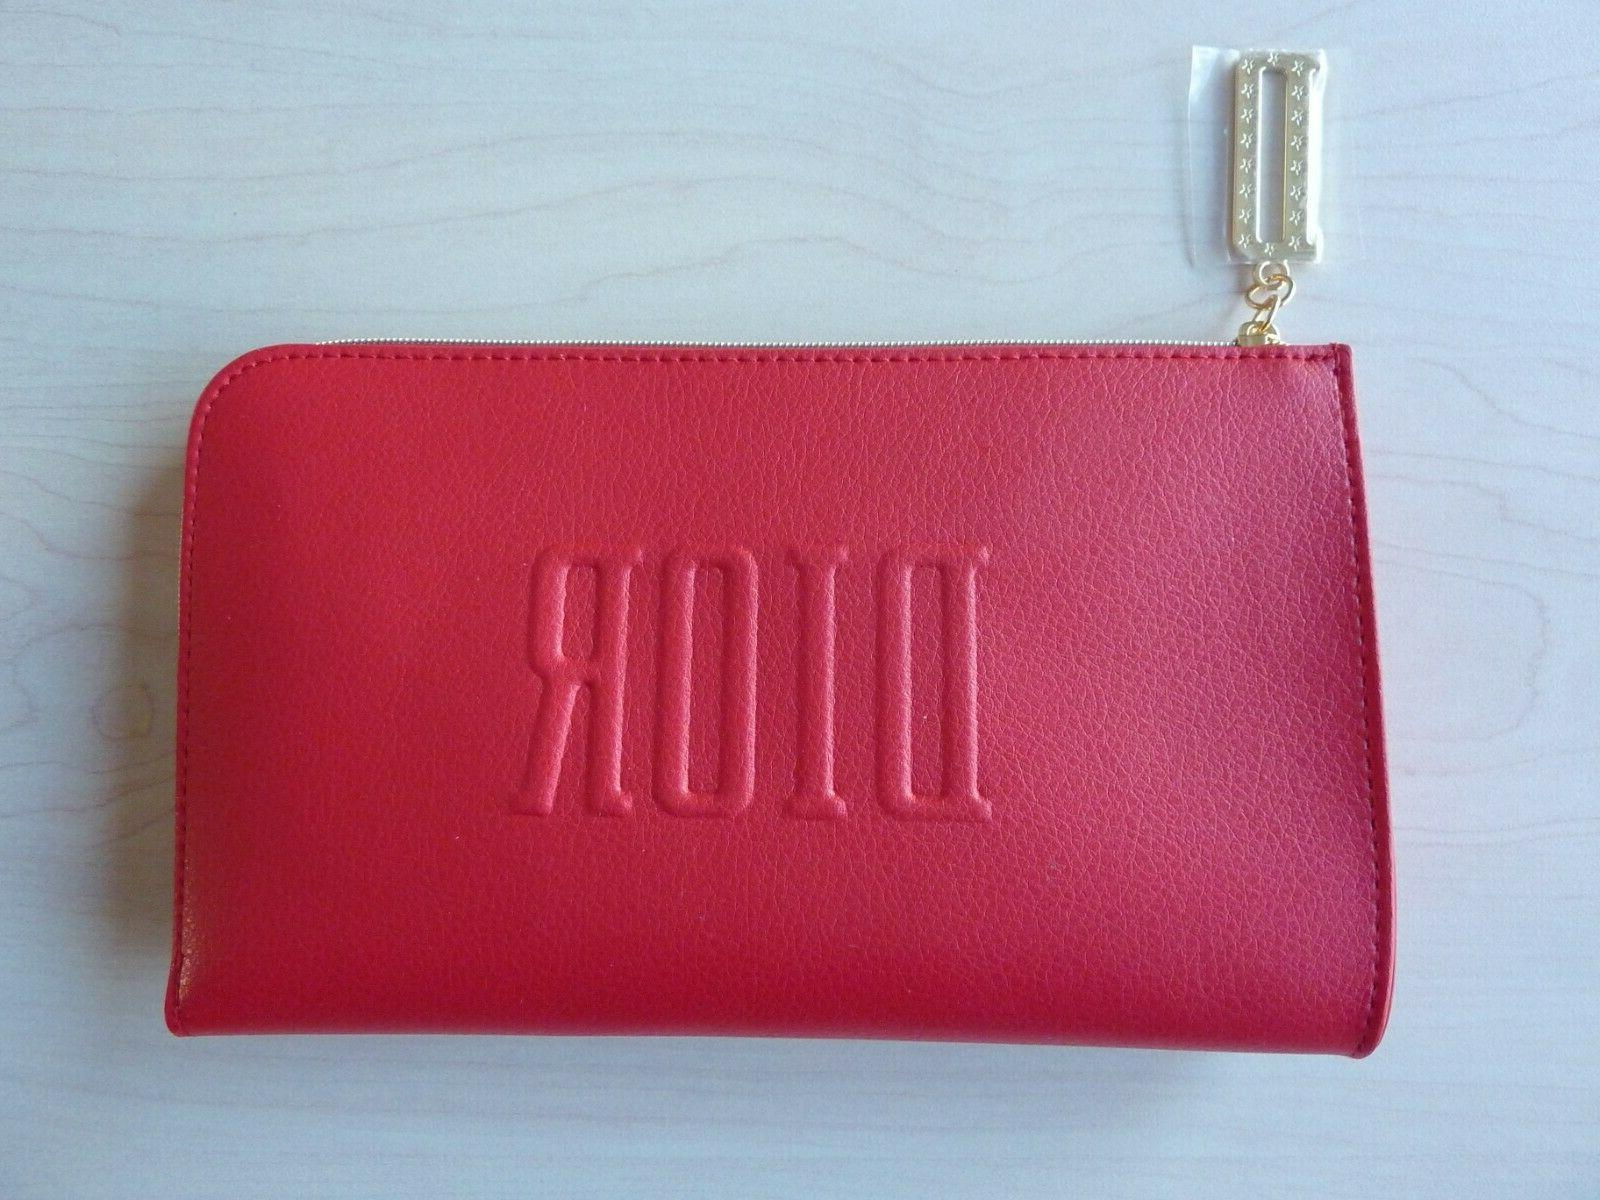 new authentic red cosmetic makeup case bag